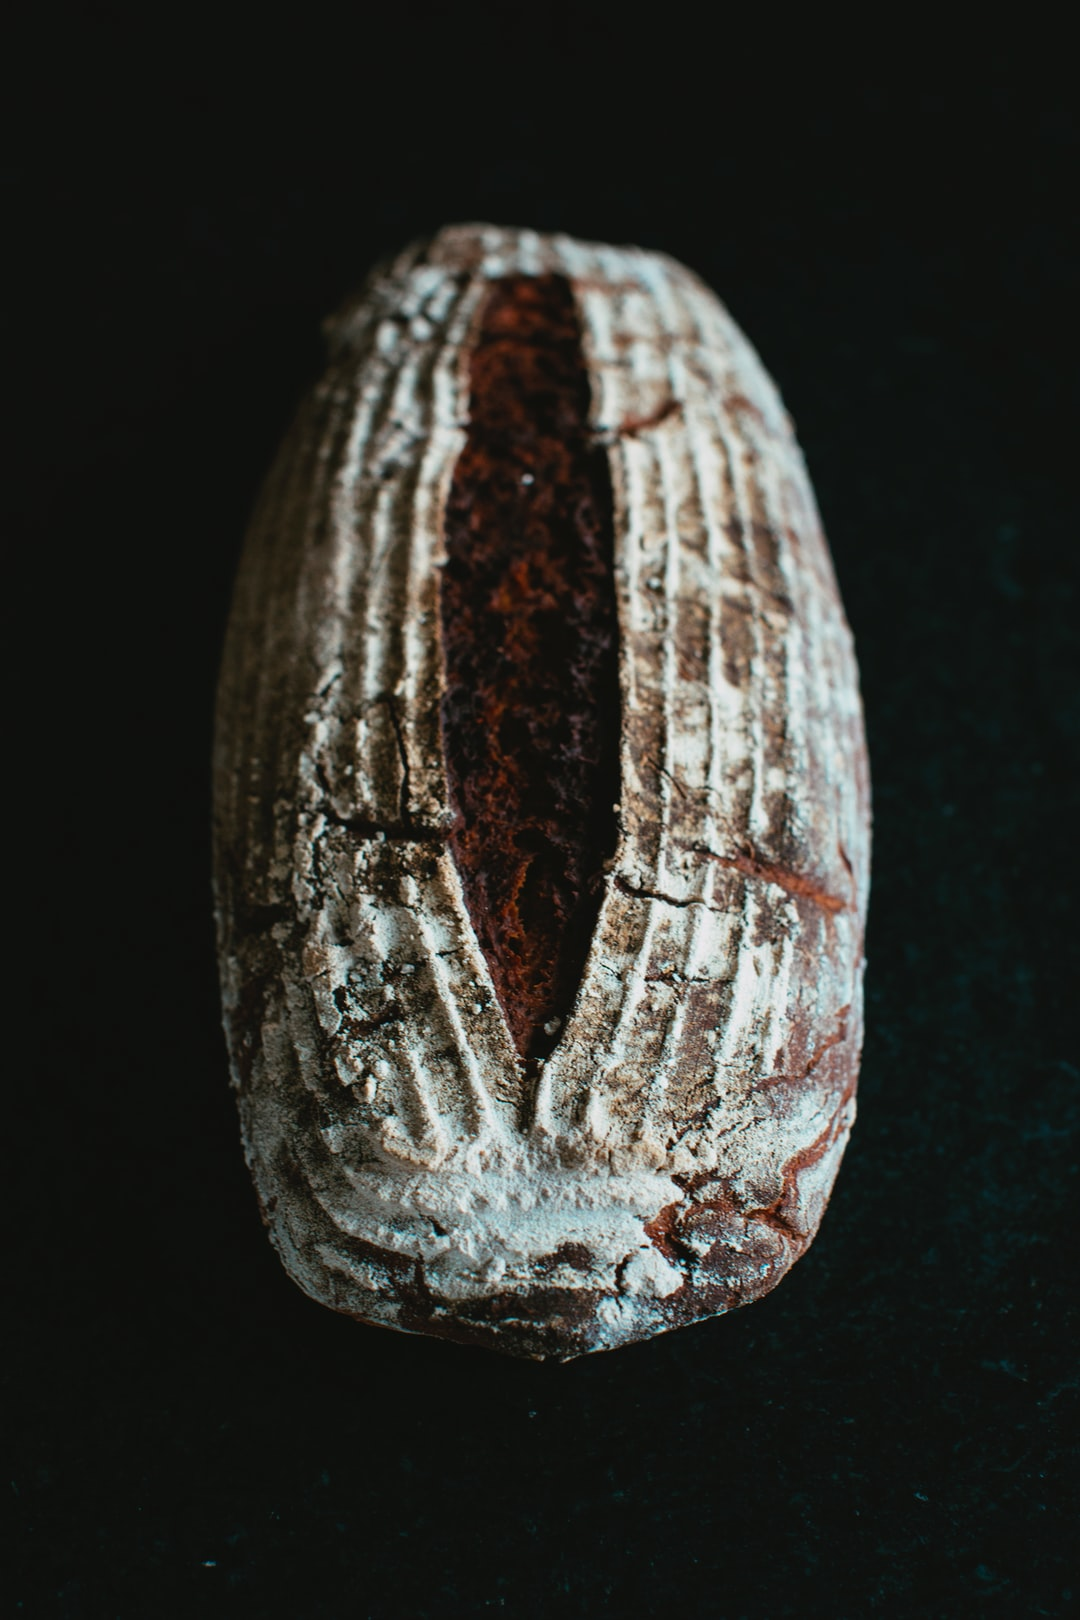 Homemade handcraft wholegrain spelled bread, baked in the old tradition